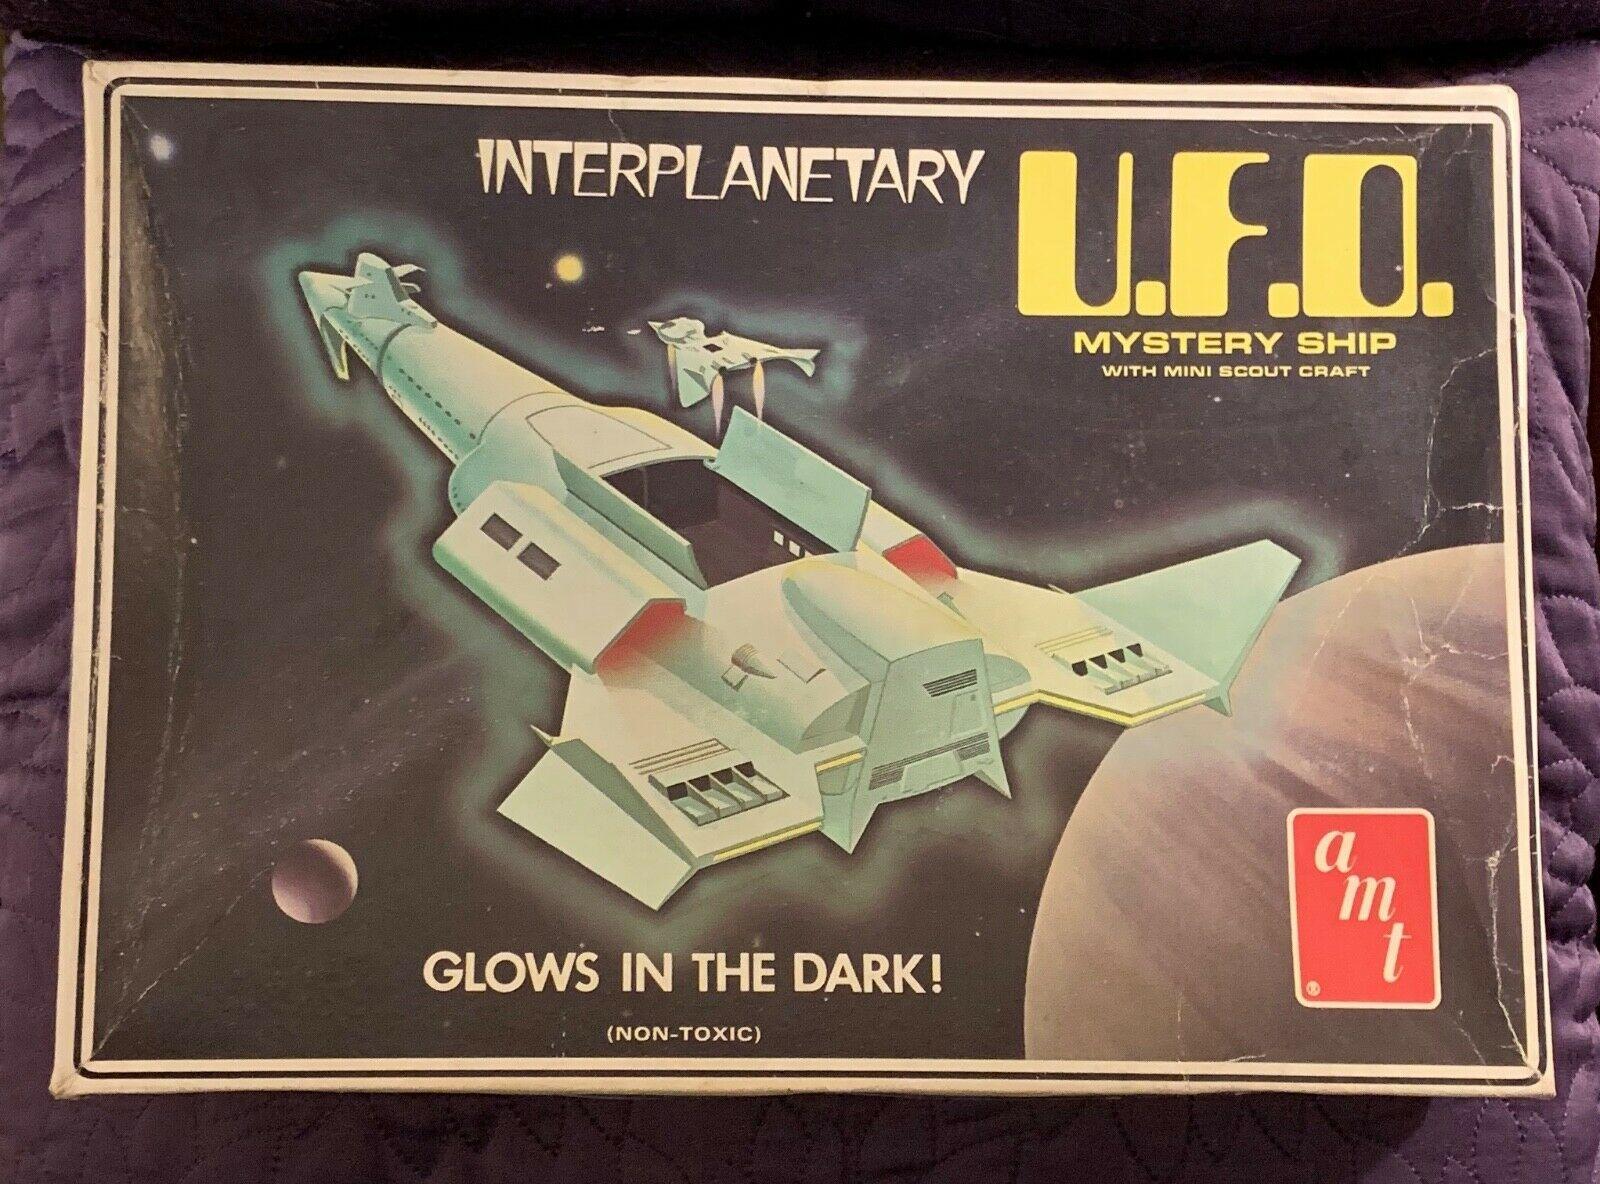 AMT  INTERPLANETARY UFO  MYSTERY SHIP  GLOWS   GITD  BOXED  COMPLETE  C. 1970'S